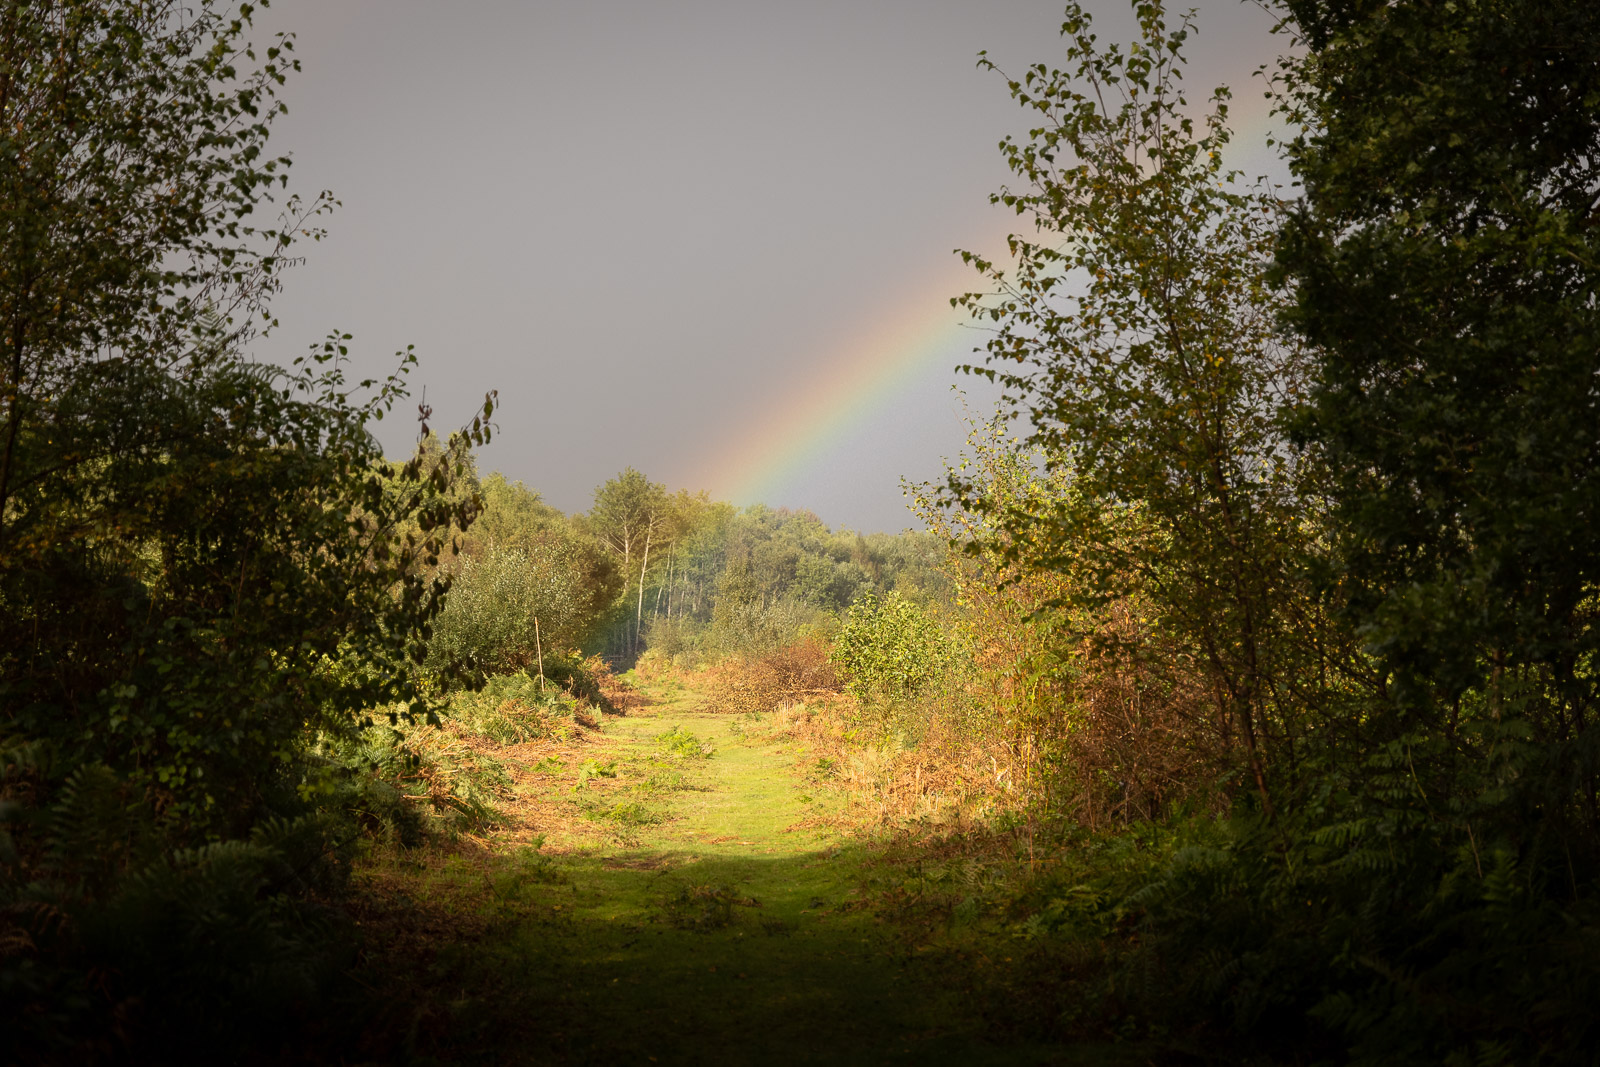 Rainbow over the mire - Westhay, Somerset, UK. ID BR57707